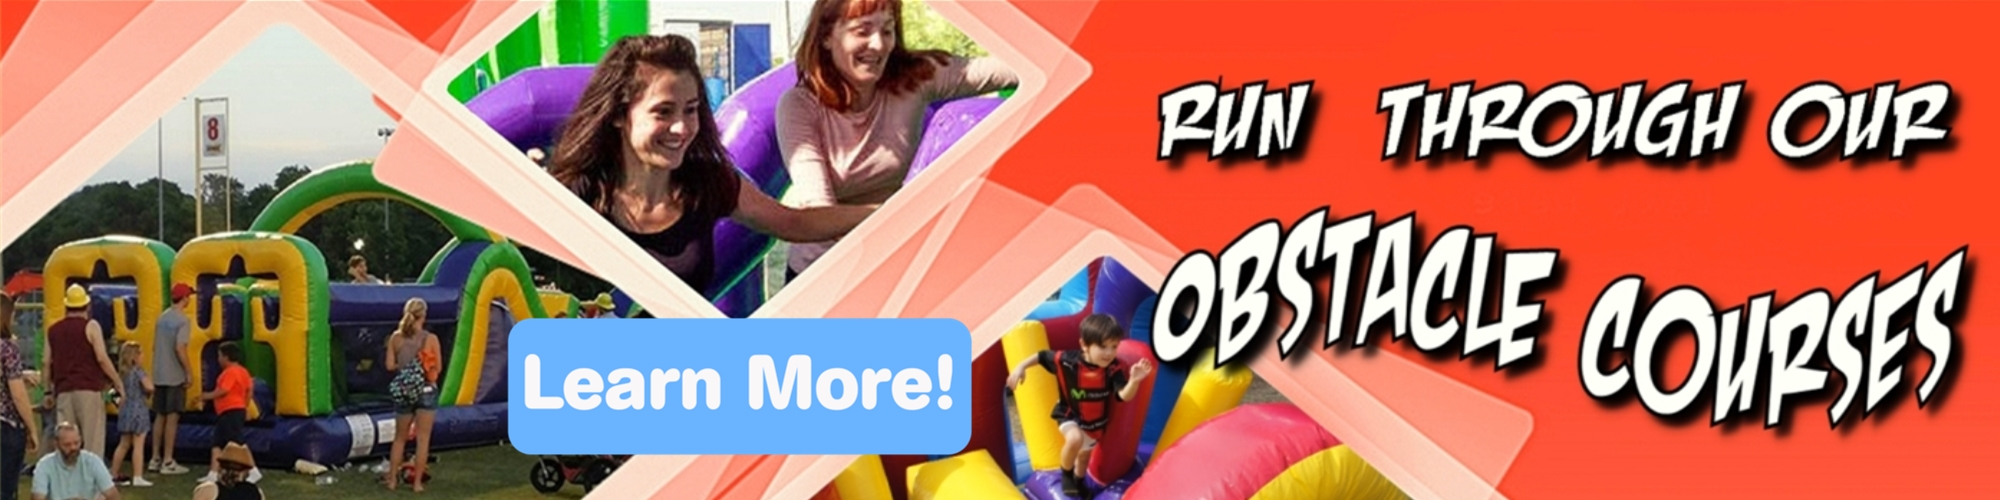 Obstacle course rentals Nashville Tn / Jumping Hearts Party Rentals La Vergne TN